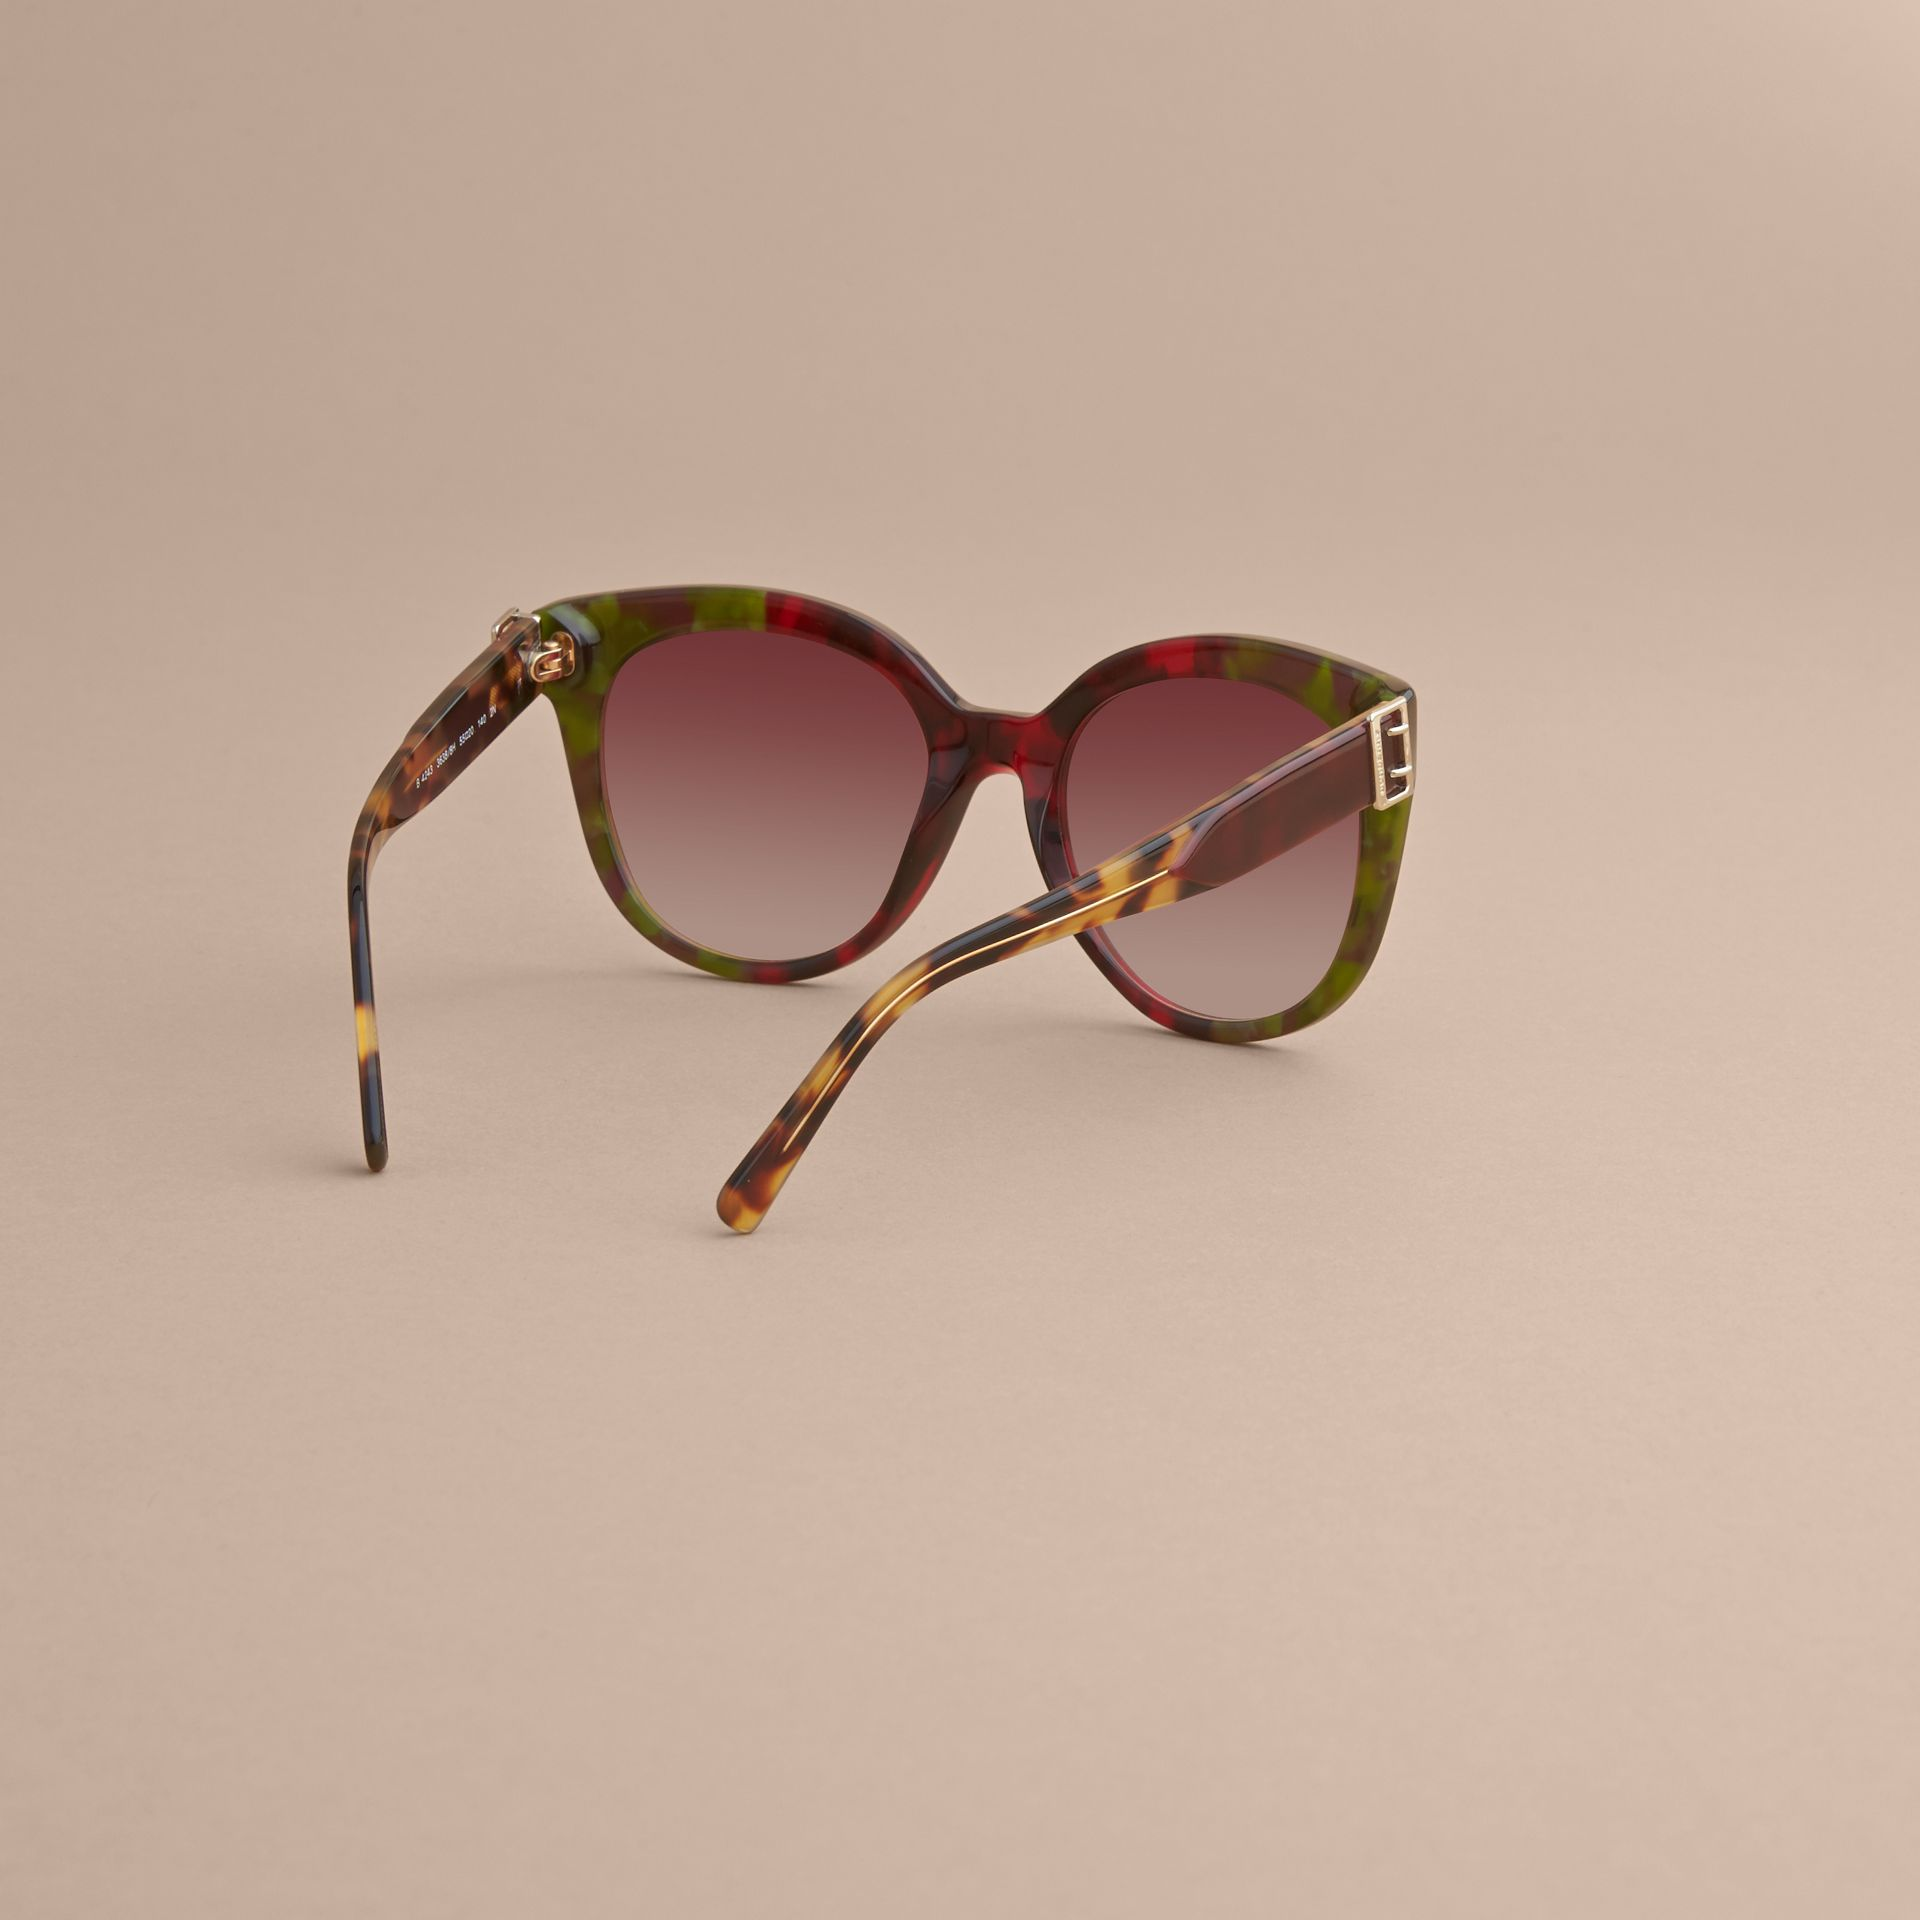 Buckle Detail Cat-eye Frame Sunglasses in Cardinal Red - Women | Burberry - gallery image 4